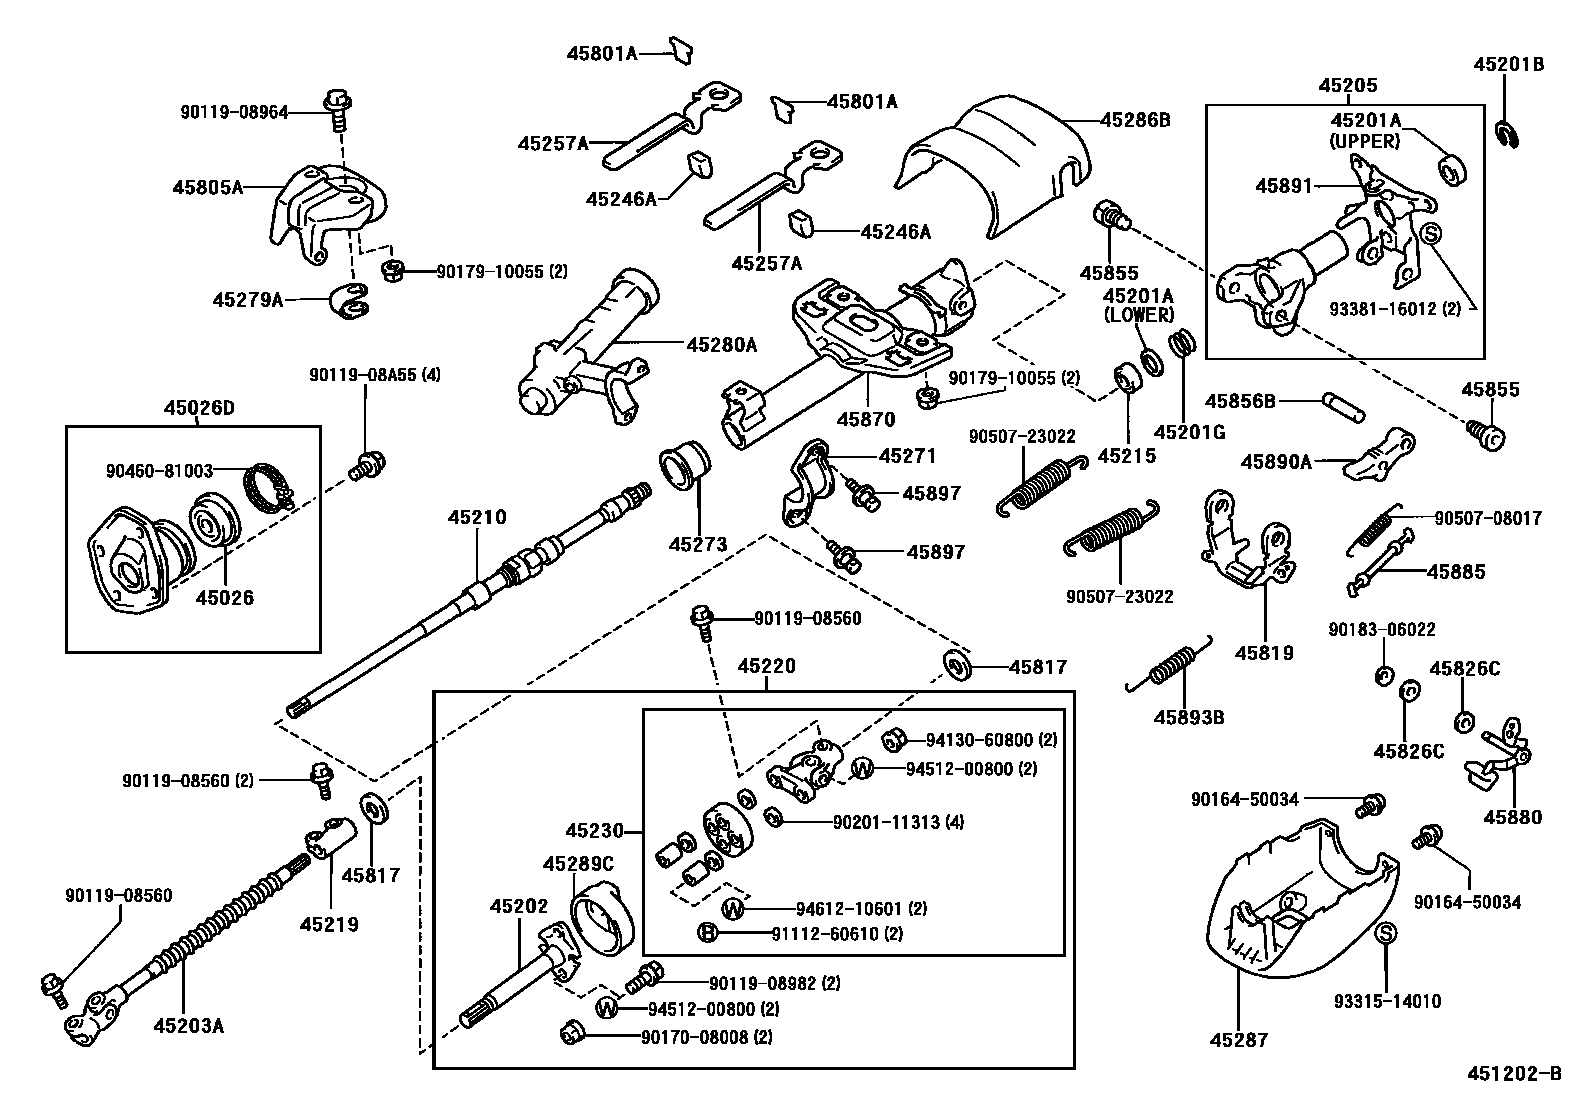 s10 steering wheel wiring schematics 91 s10 steering wheel wiring diagram s10 steering wheel wiring schematic | wiring diagram database